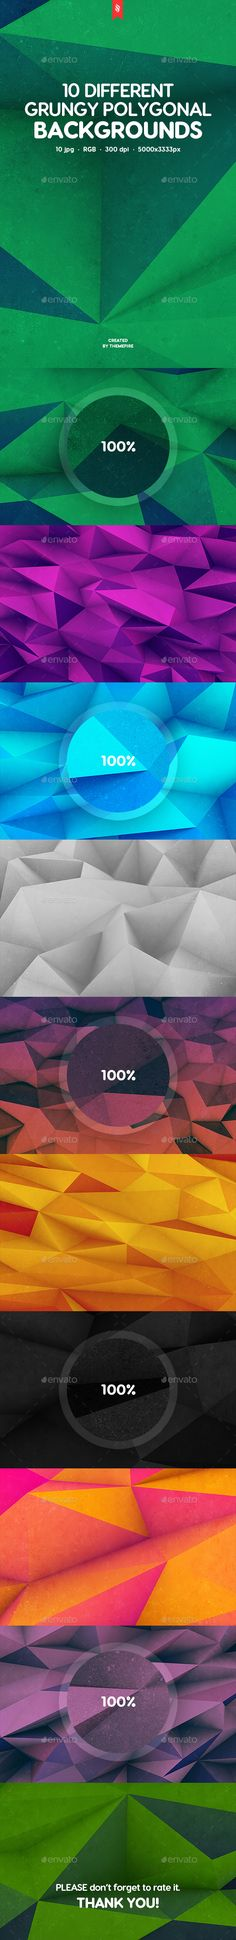 10 Different Grungy Polygonal Backgrounds by themefire This pack contains 10 jpg different abstract grungy 3d realistic polygon backgrounds for your projects. You can use these backgrou